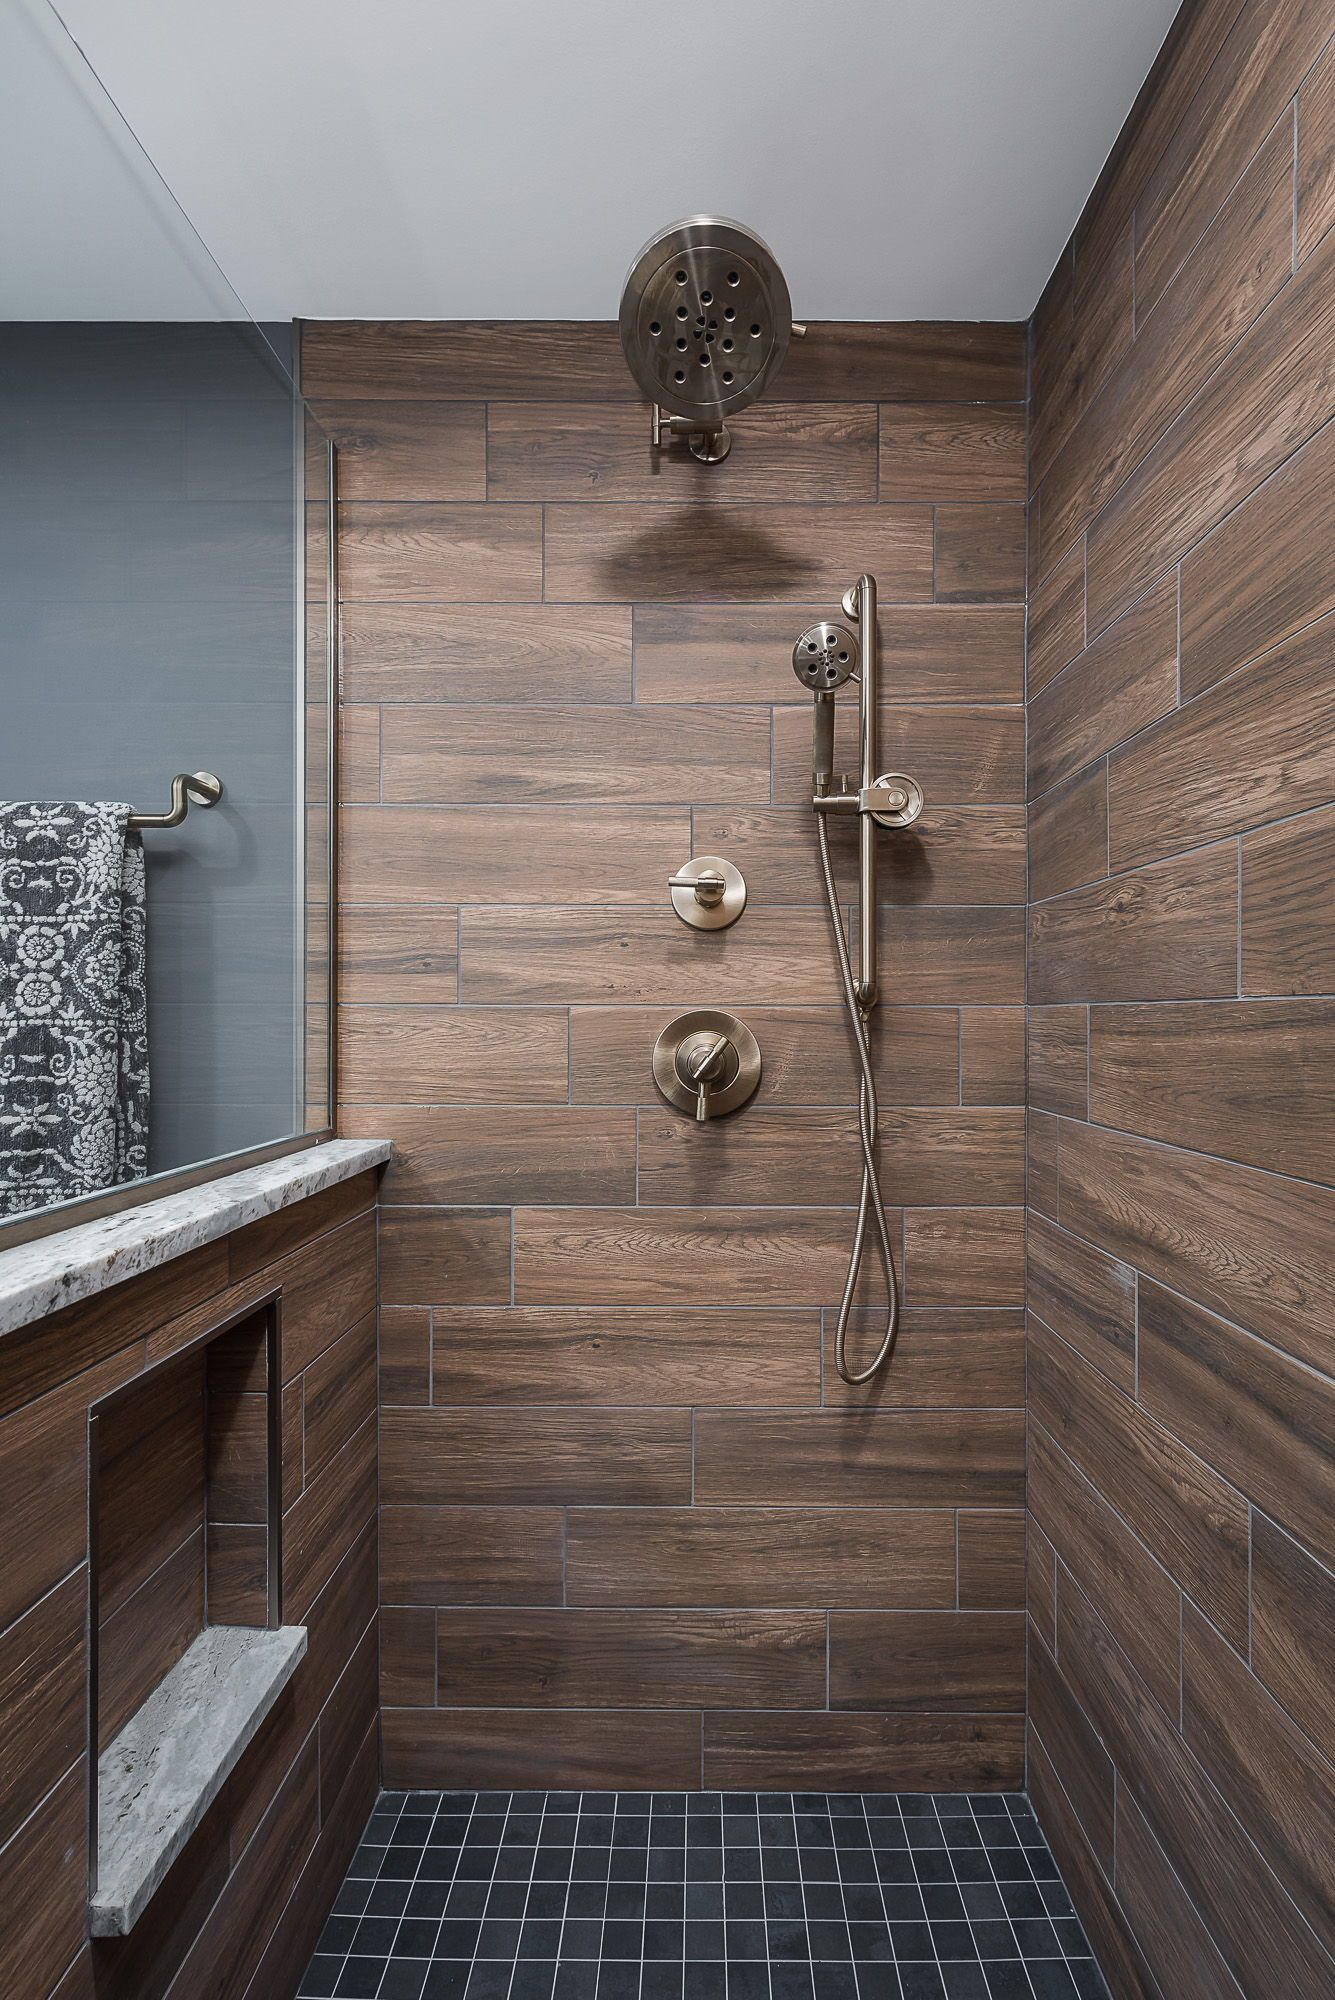 Add Character And Charm To Cool Toned Spaces By Mixing In Warm Elements Like This Wood Look Tile Wood Look Tile Bathroom Beautiful Tile Bathroom Wood Look Tile